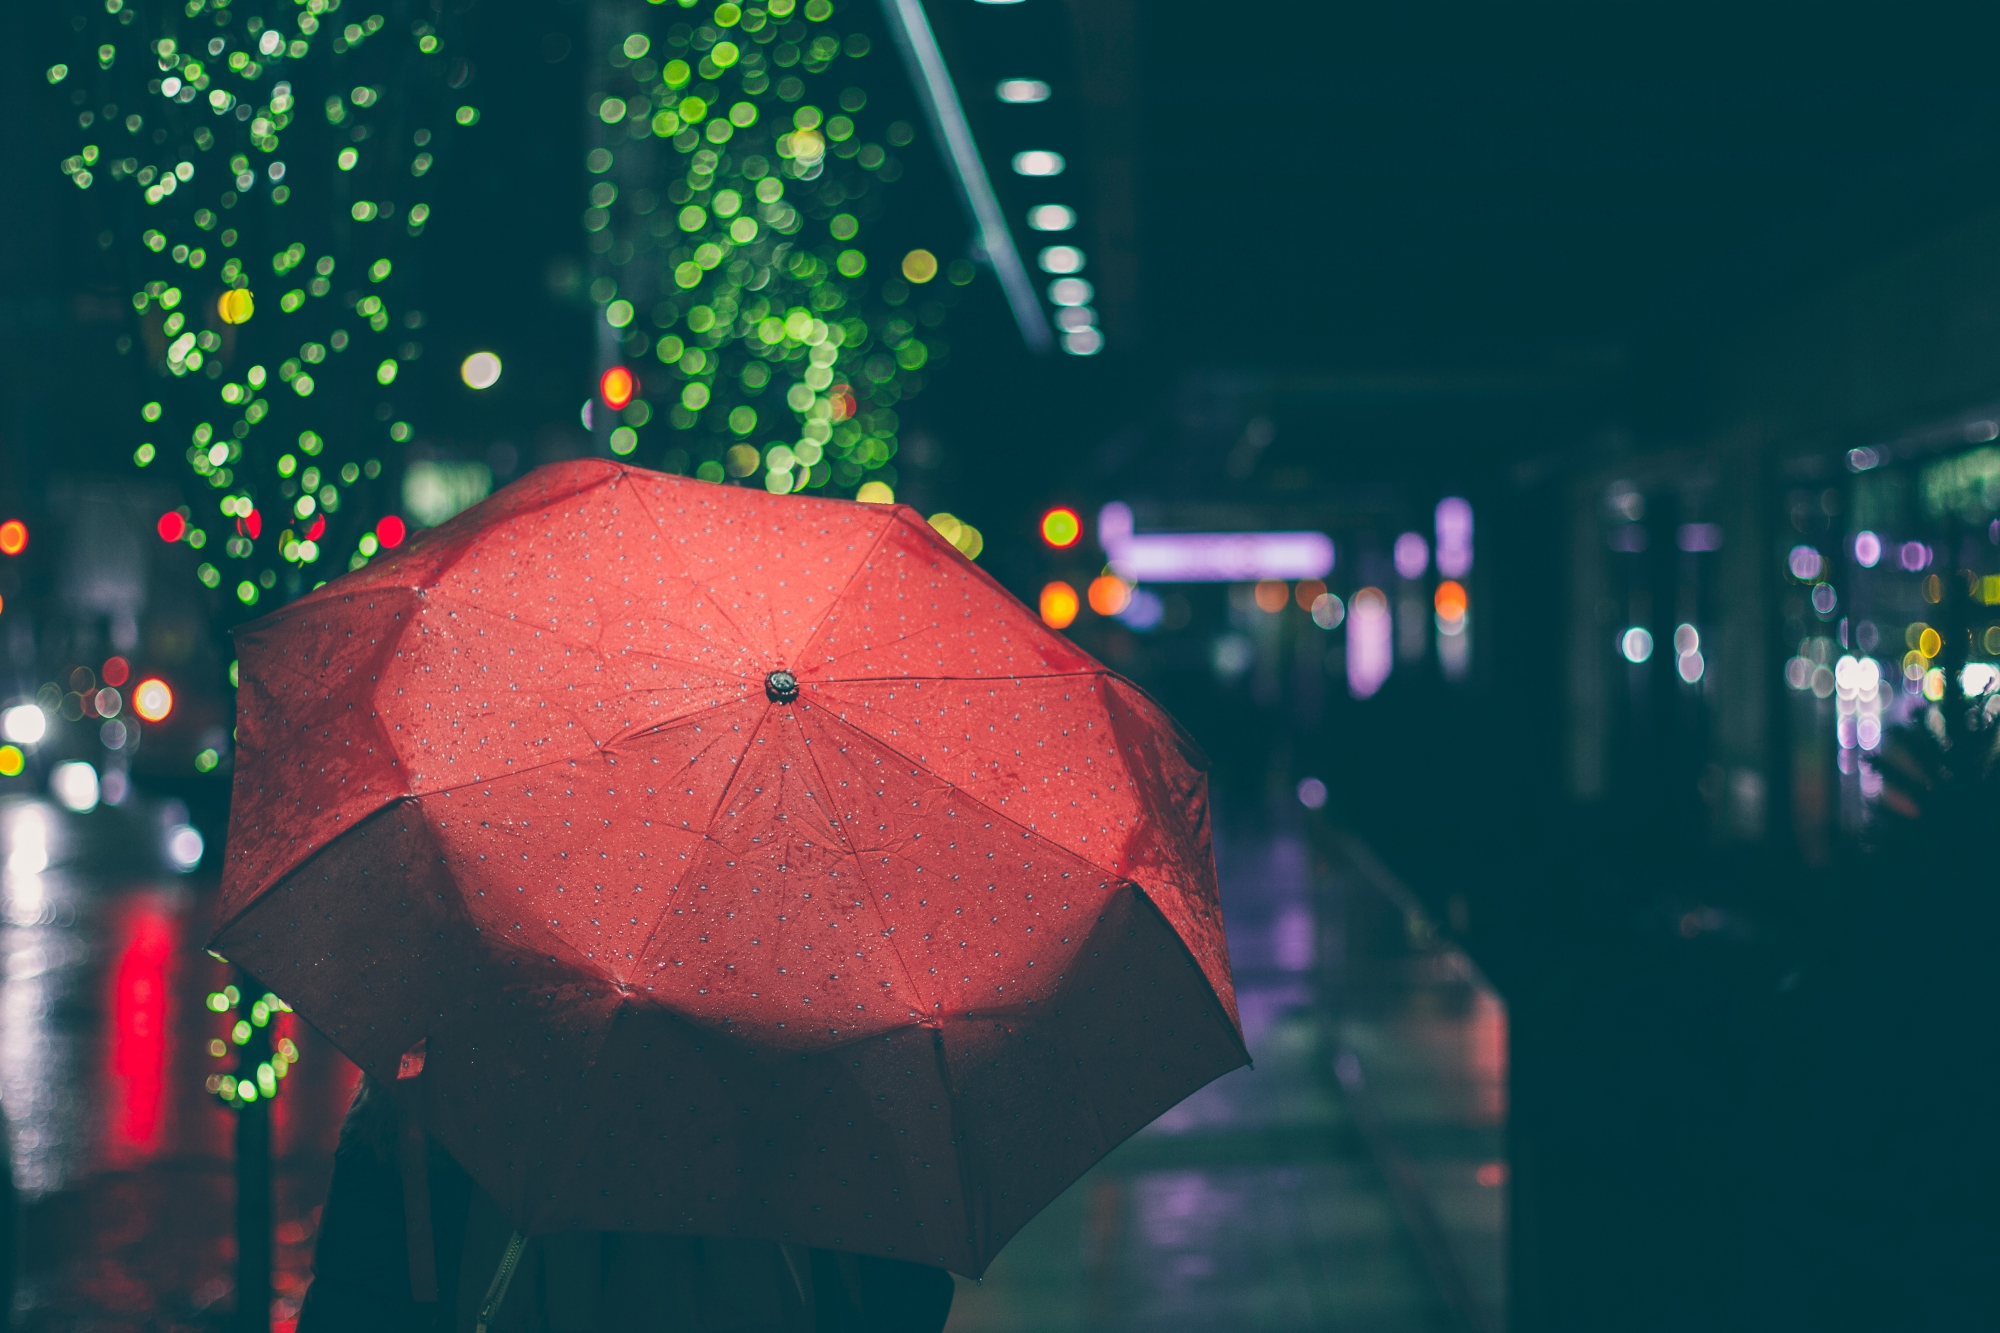 Rain red umbrella night stock photo - Pexels | The Lonely Tribalist